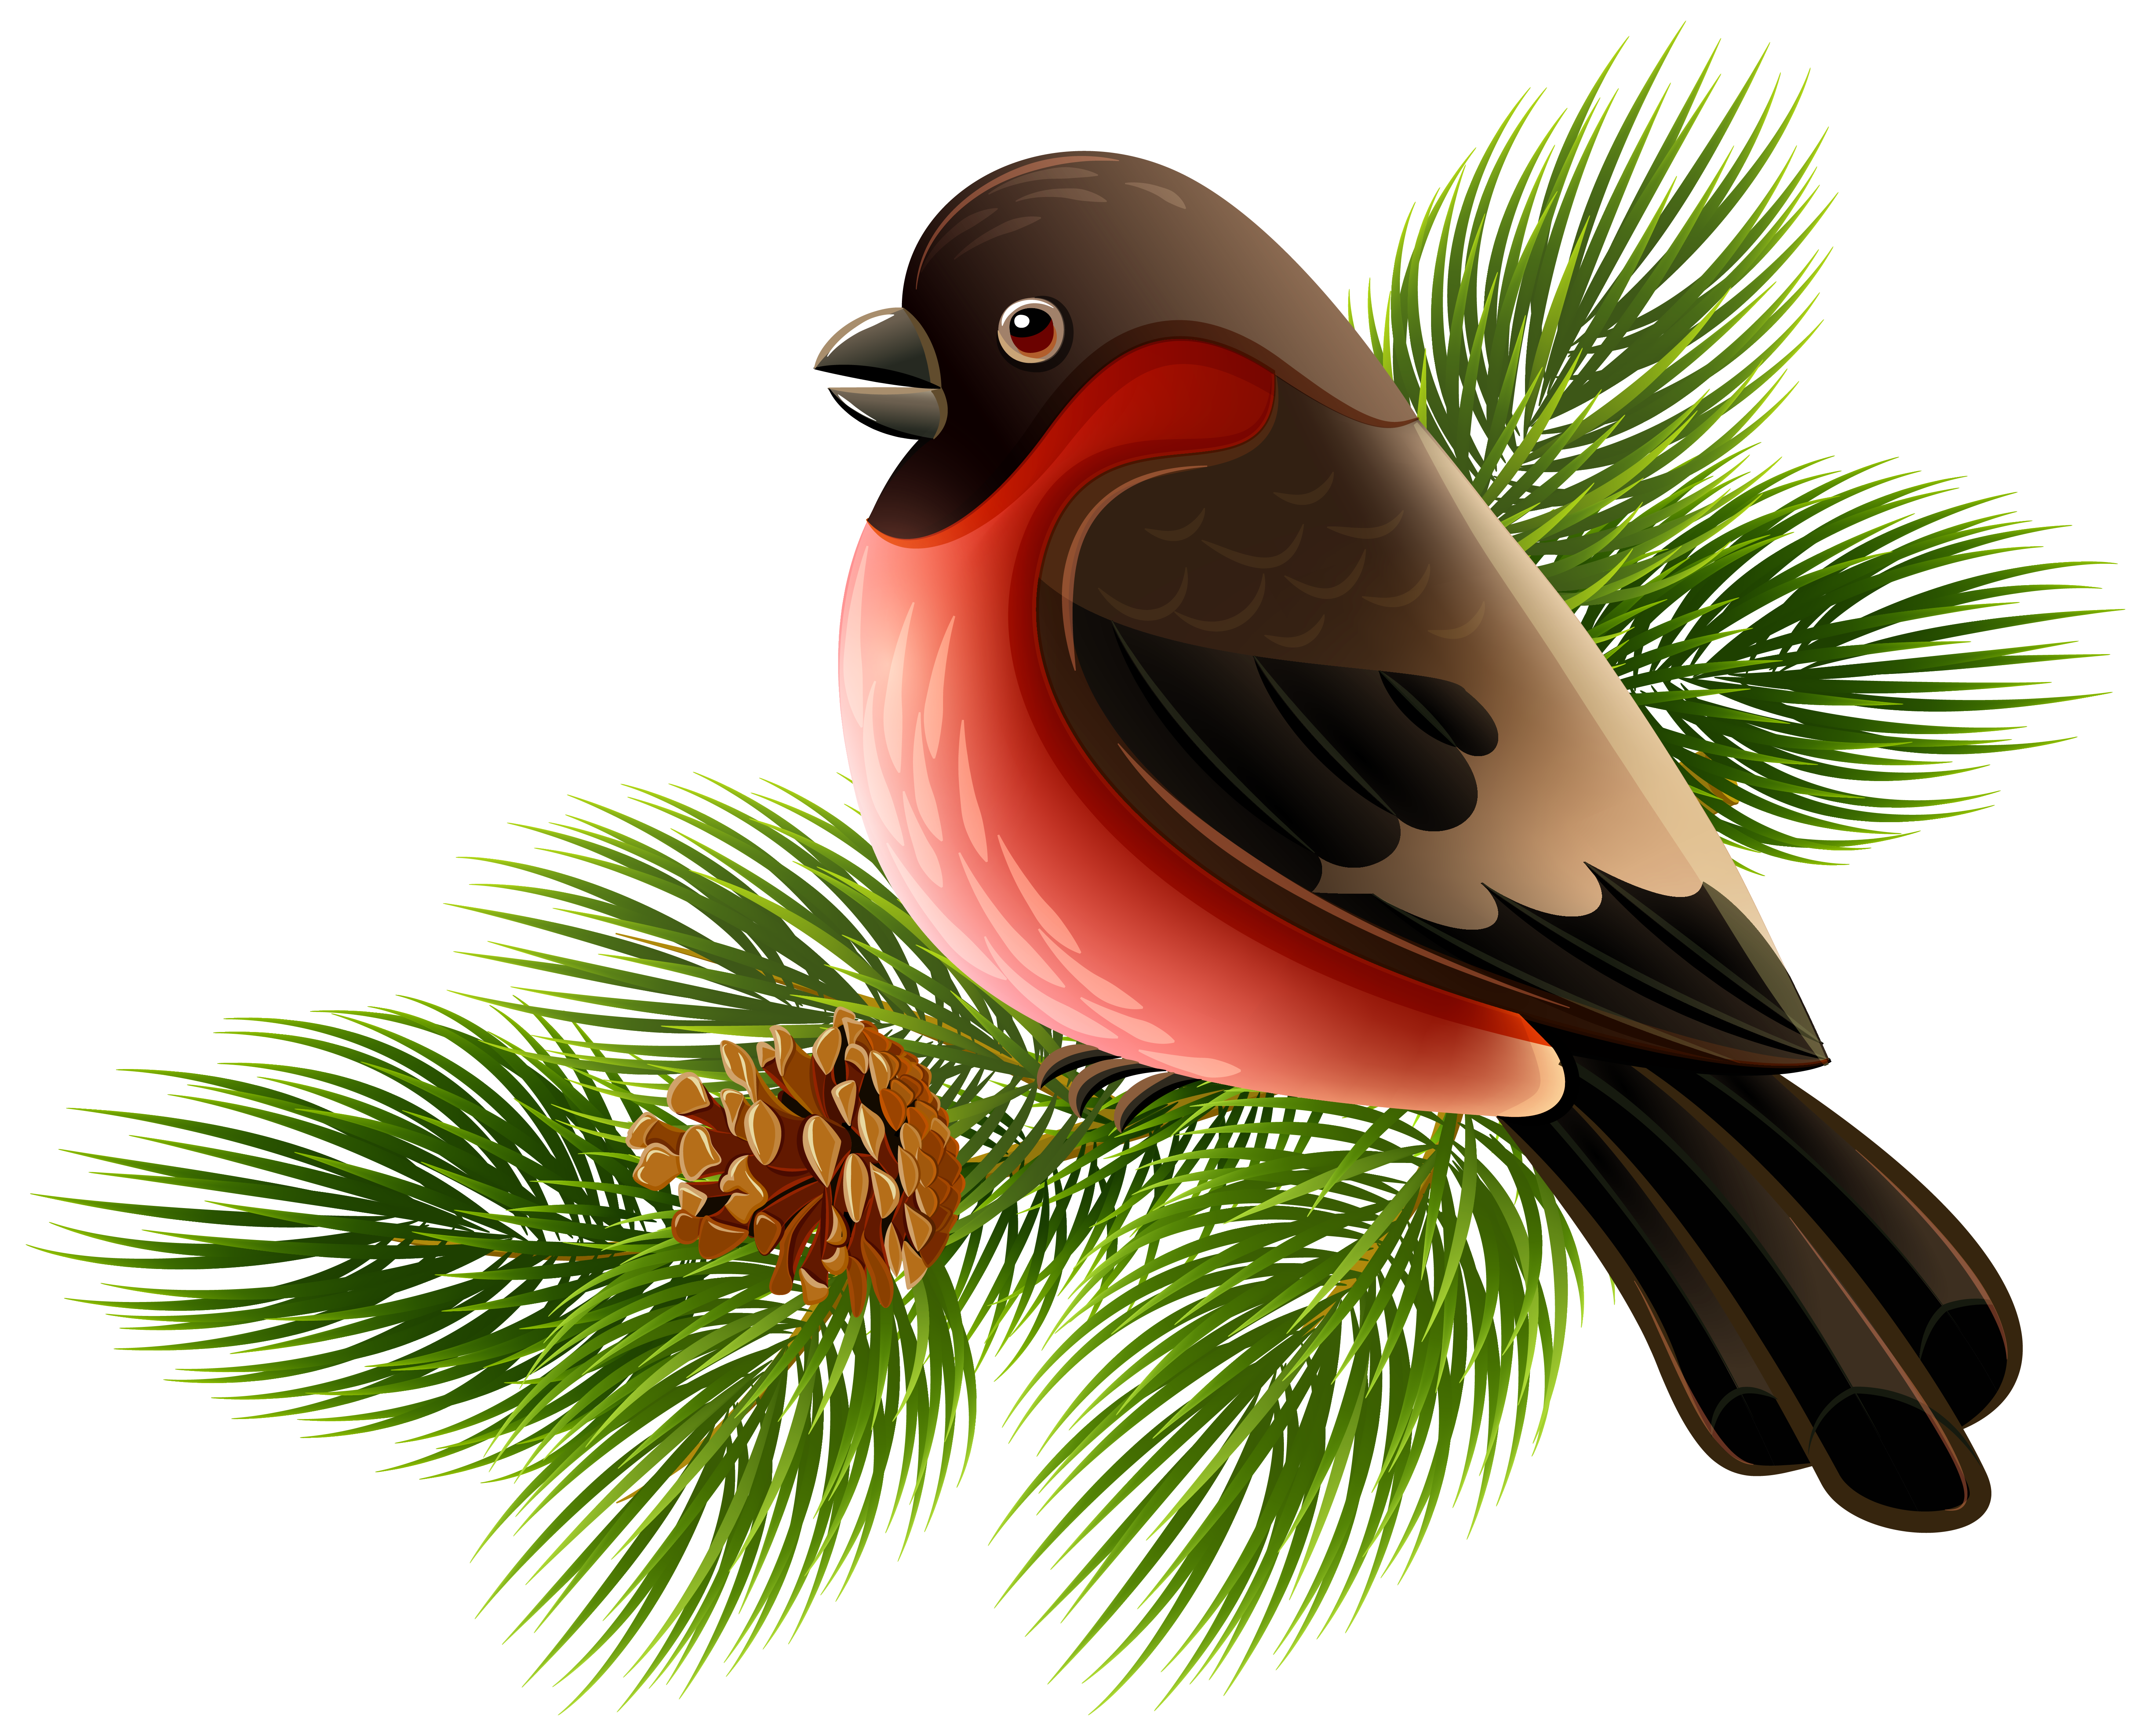 Bird On Branch Png - Bird and Pine Branch PNG Clipart Image | Gallery Yopriceville ...